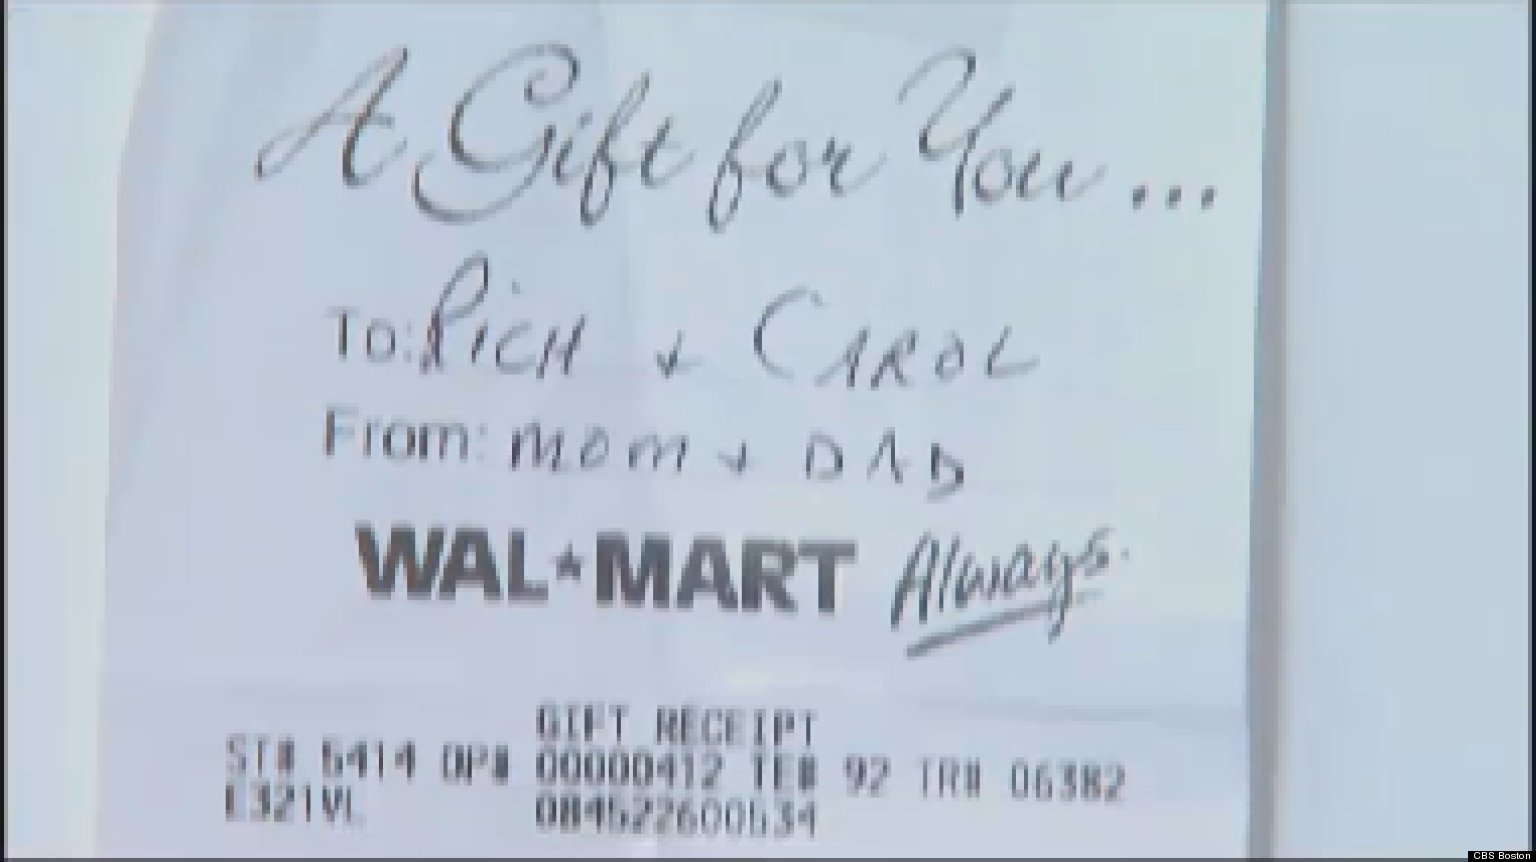 Walmart Accused Of Gift Receipt Scam For 2nd Year In A Row | HuffPost